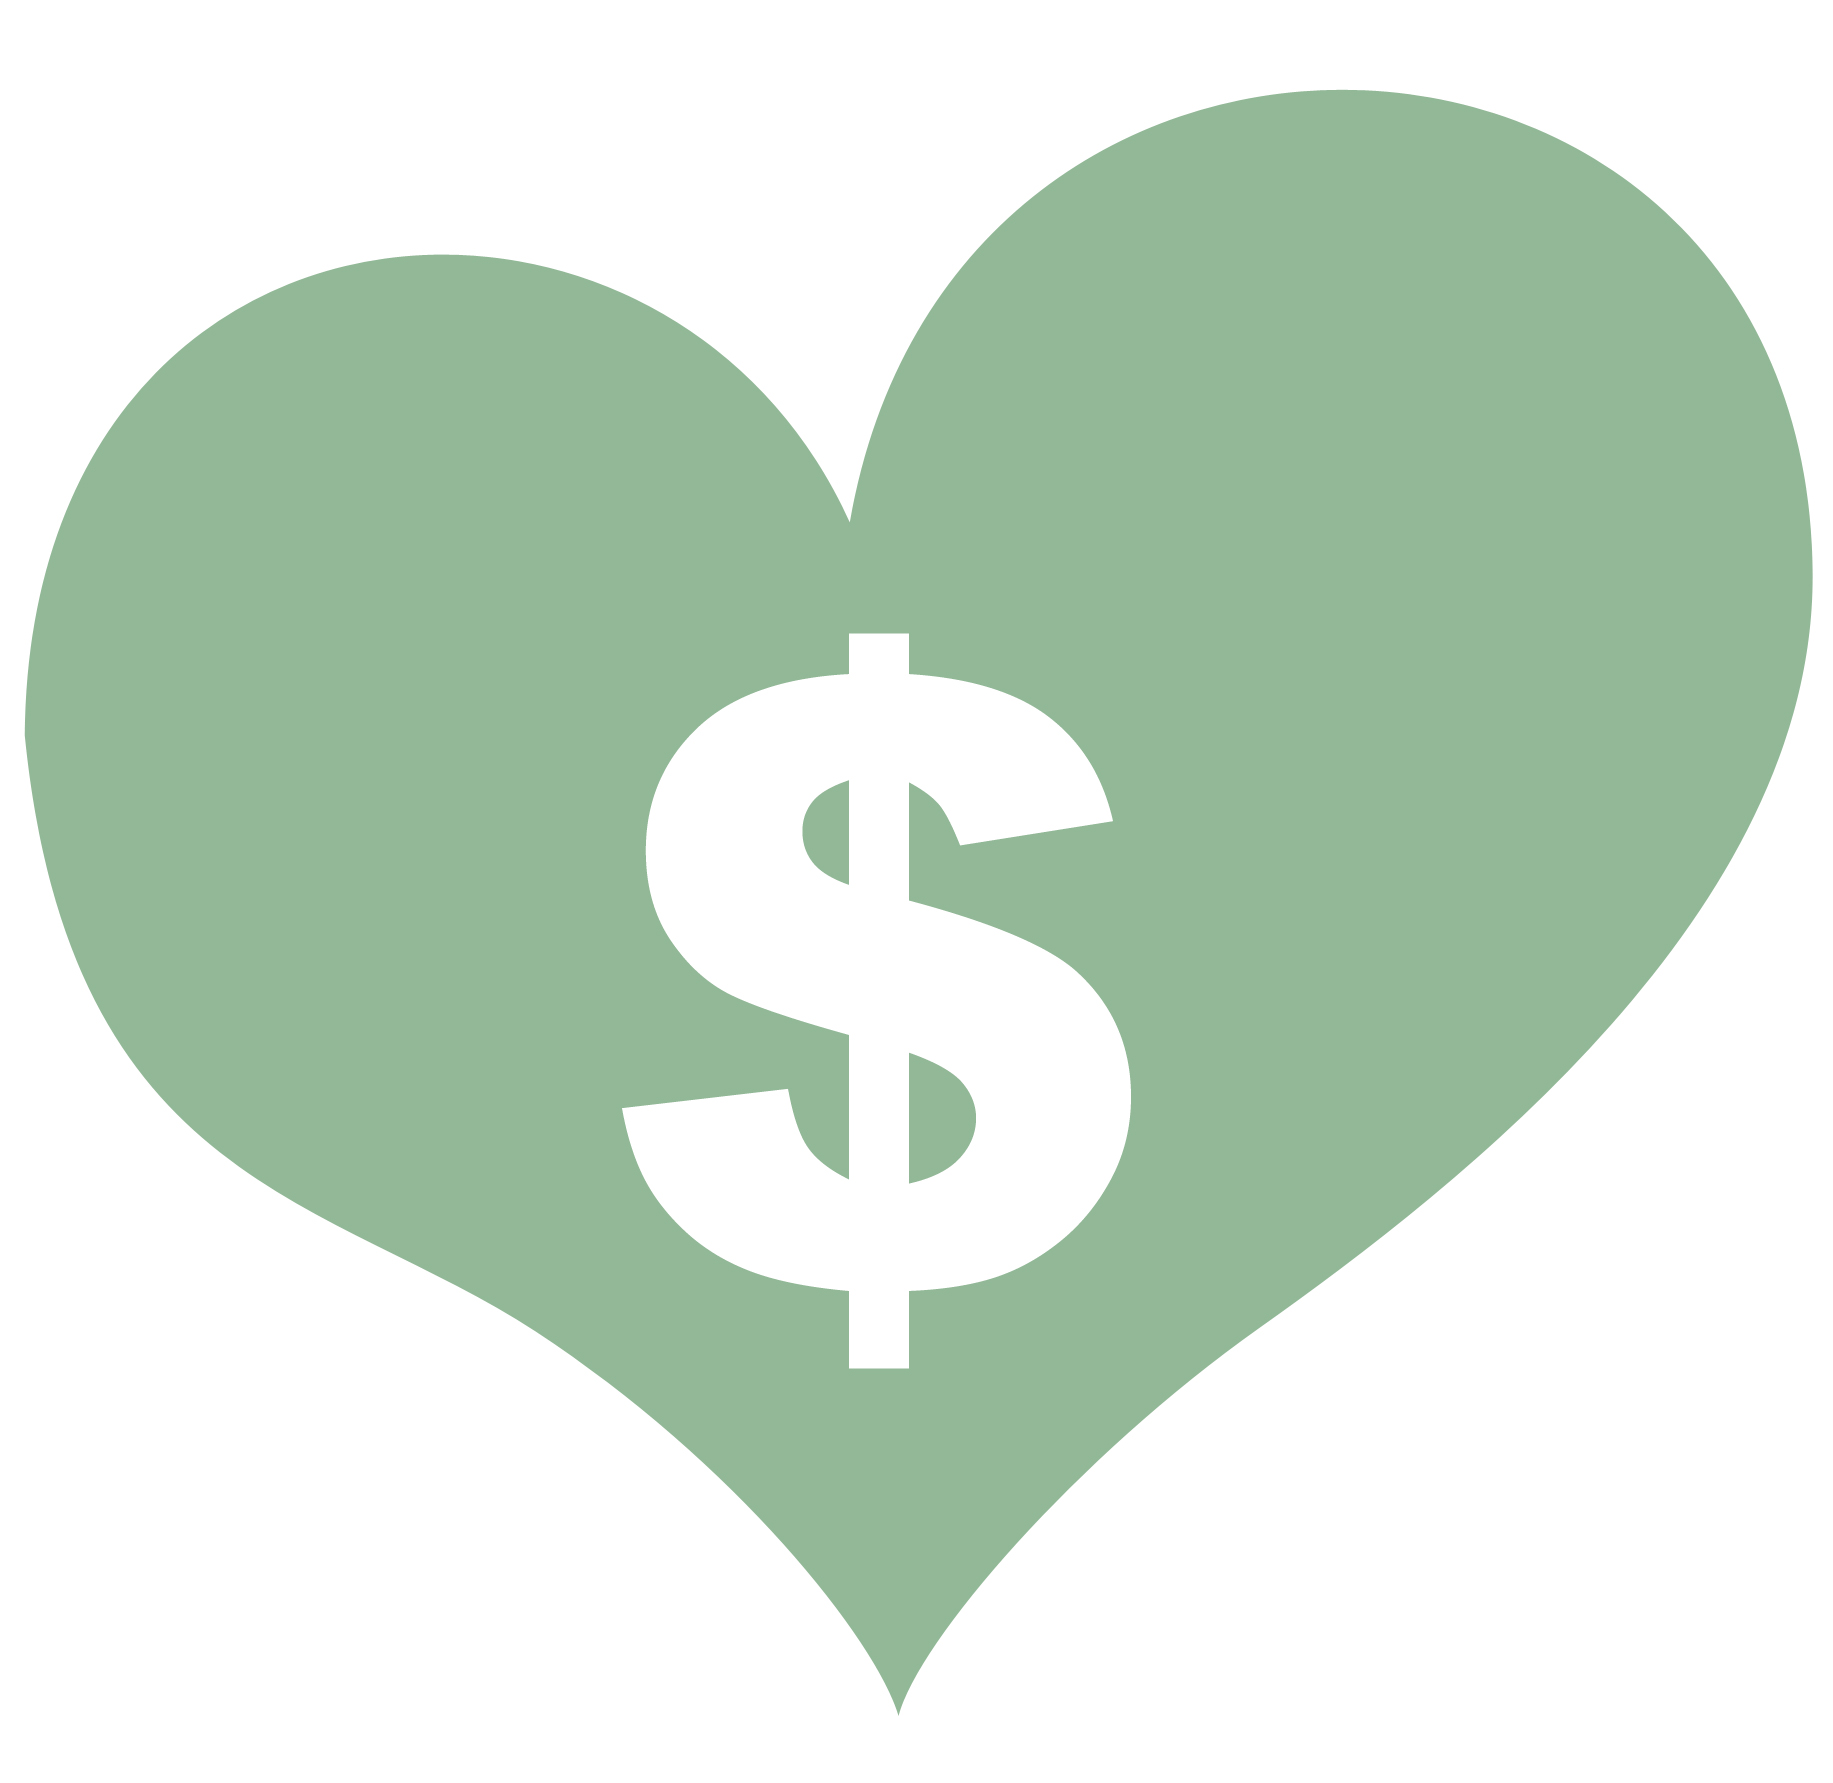 MHeart_Green_hires